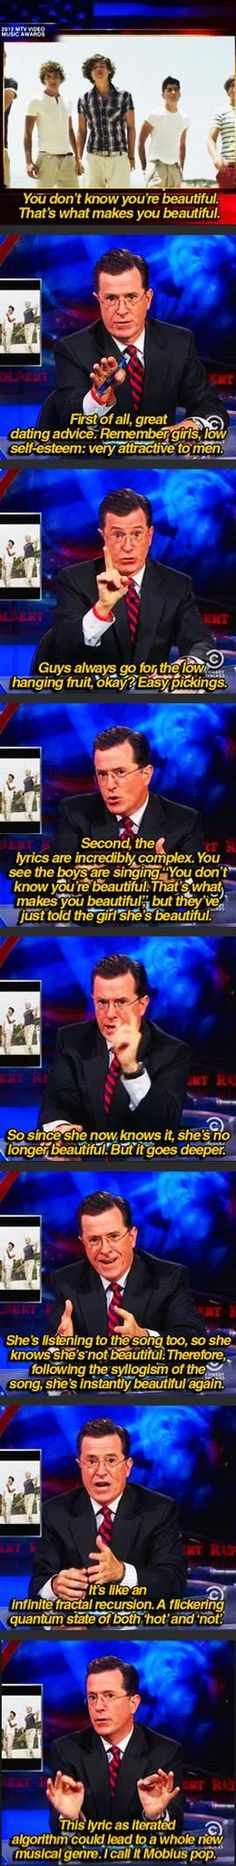 Colbert vs. One Direction